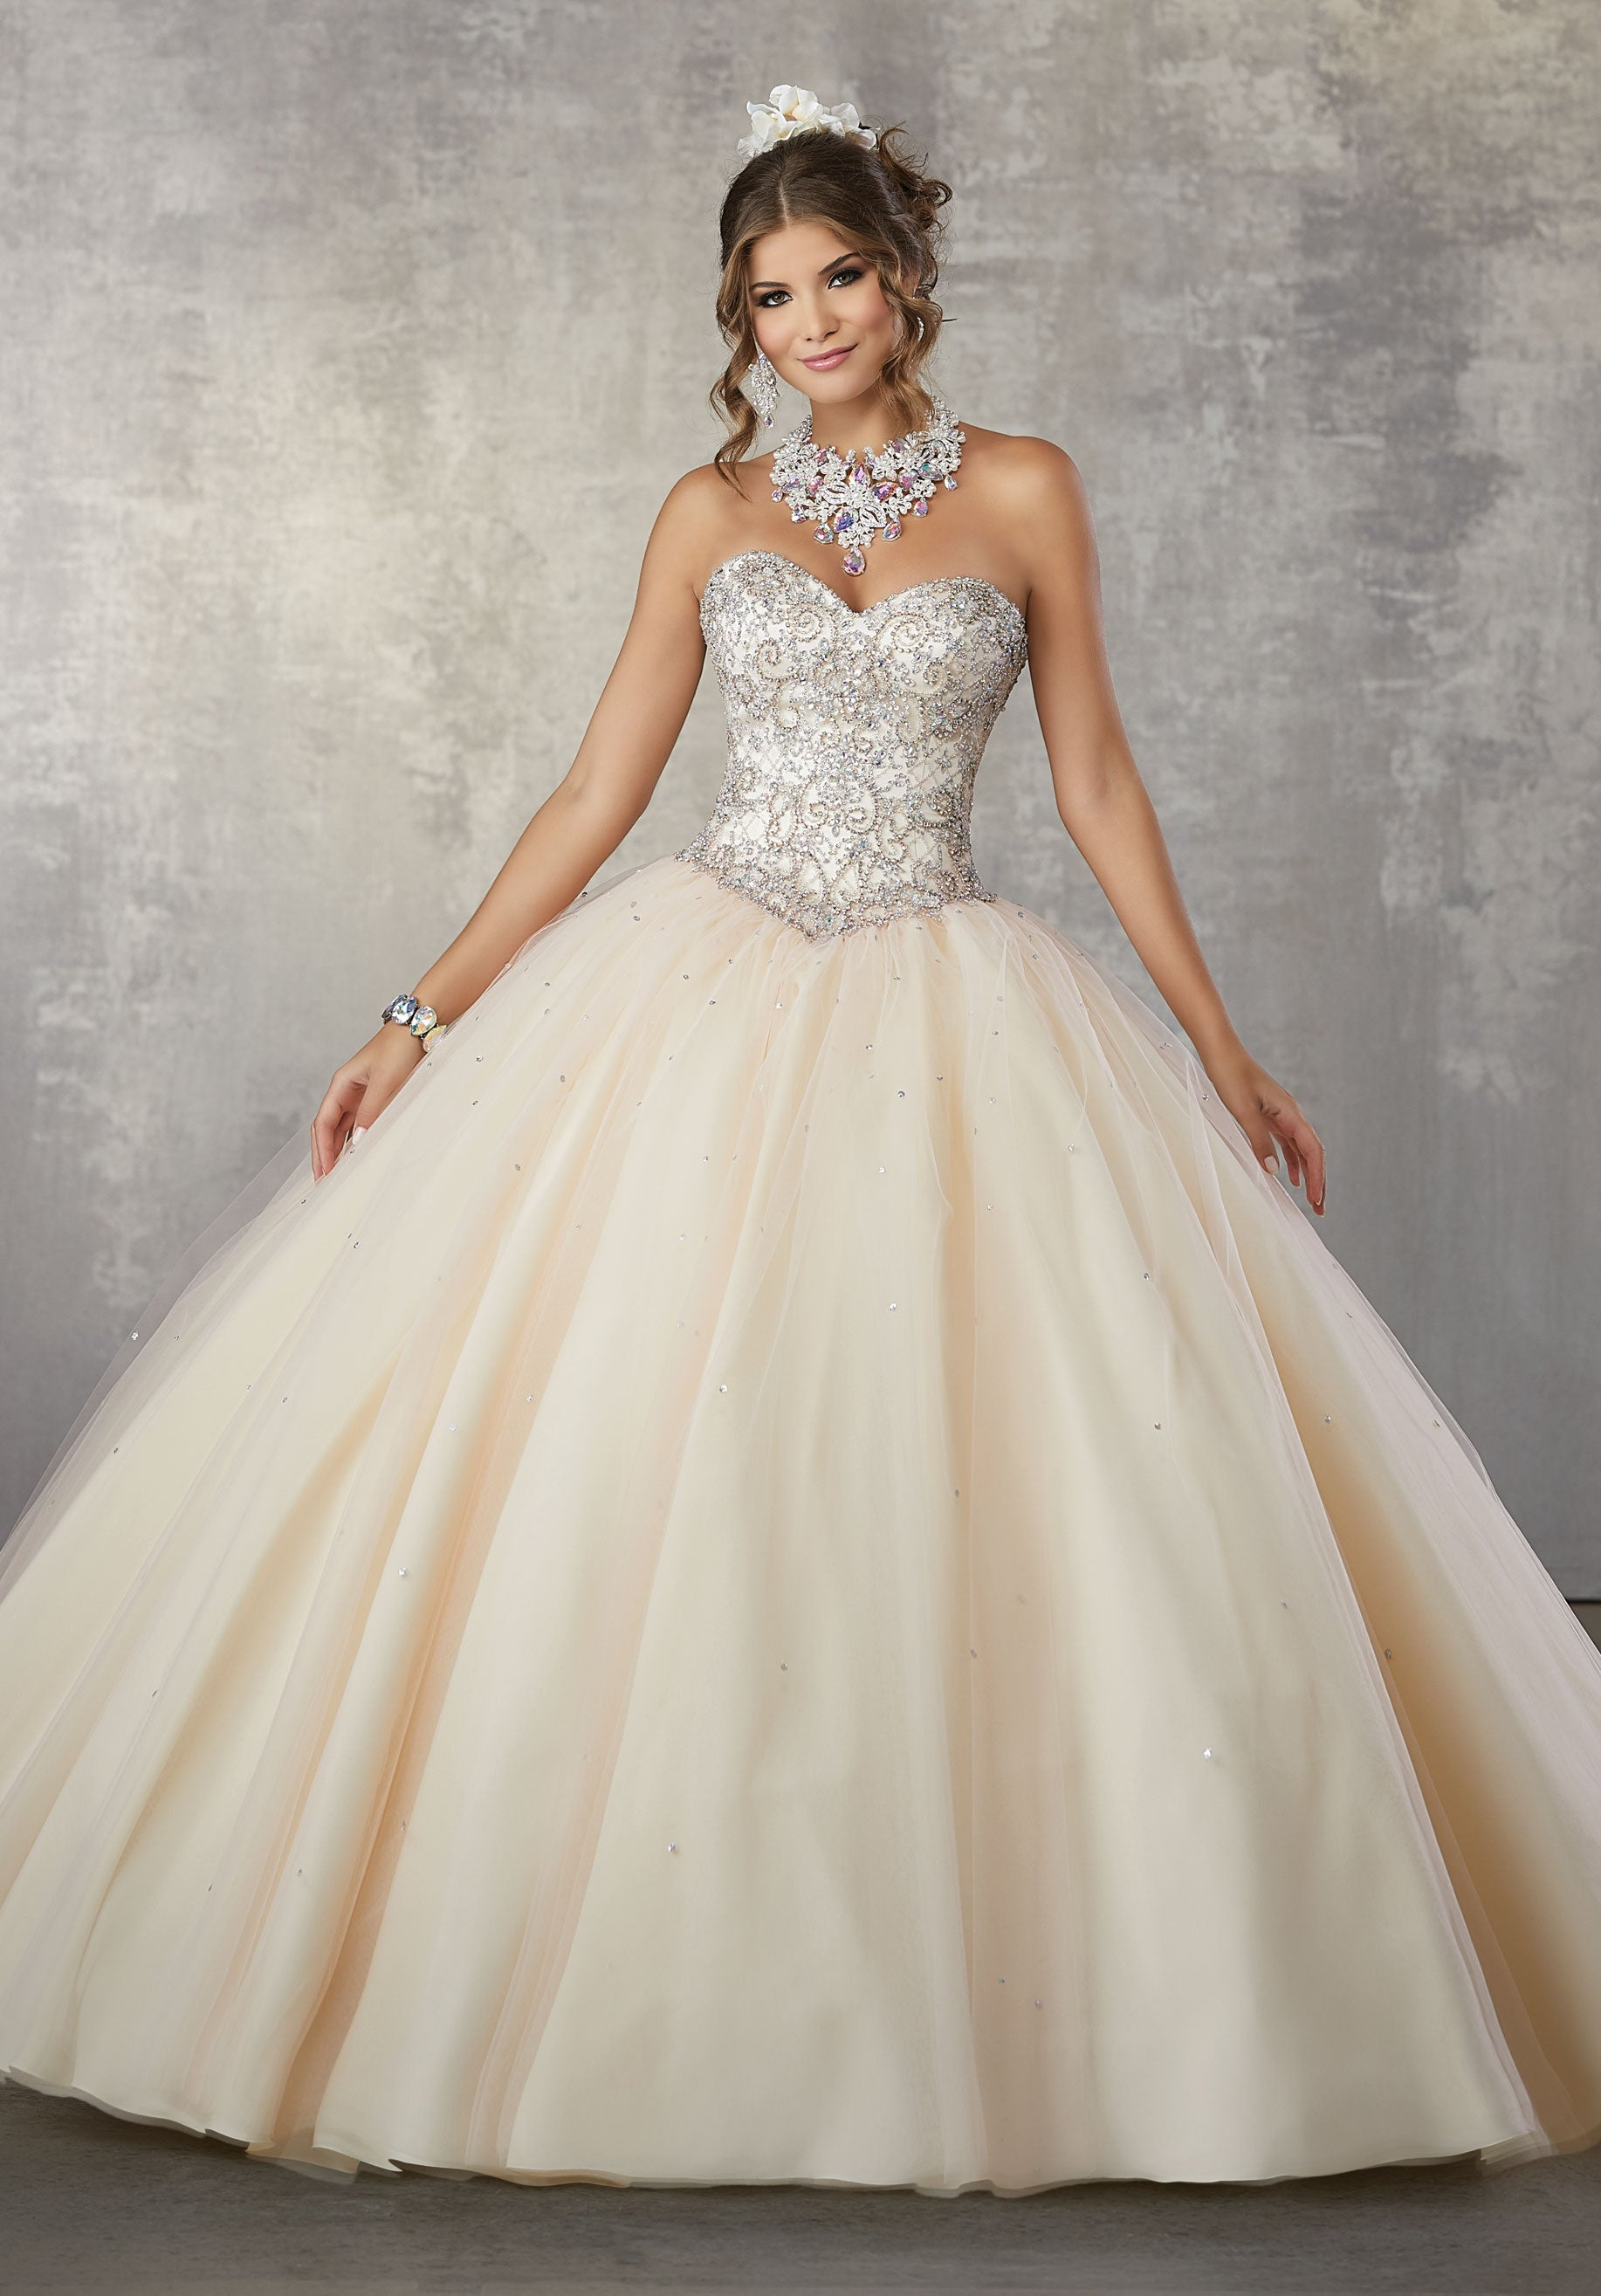 131d962f39a 78060 Tulle Quinceañera Ballgown with Beaded Skirt and Bodice ...